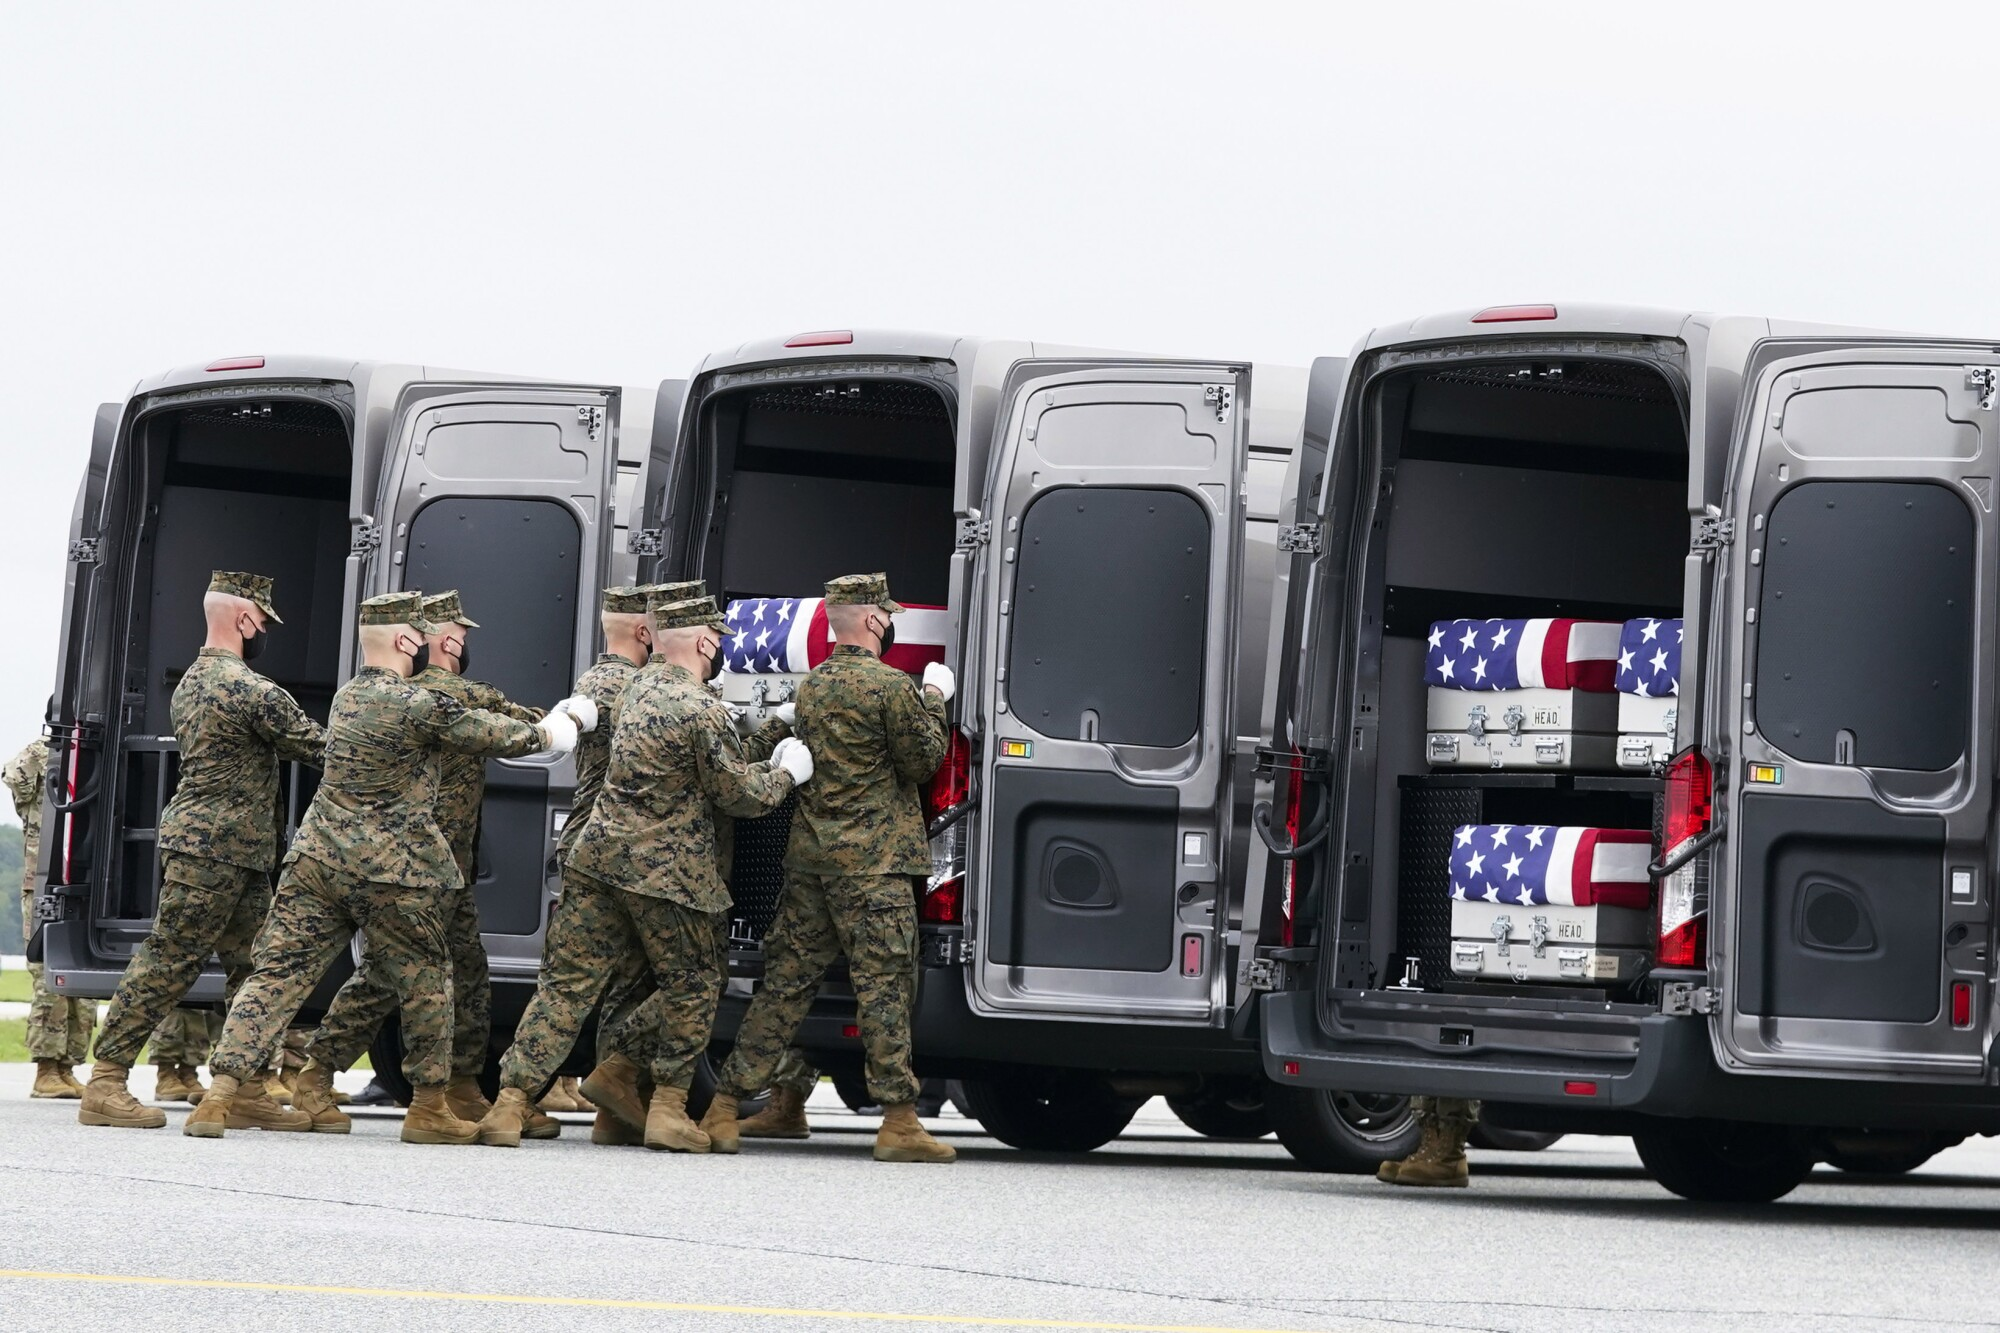 A team transfers the remains of a fallen Marine to a transport vehicle.